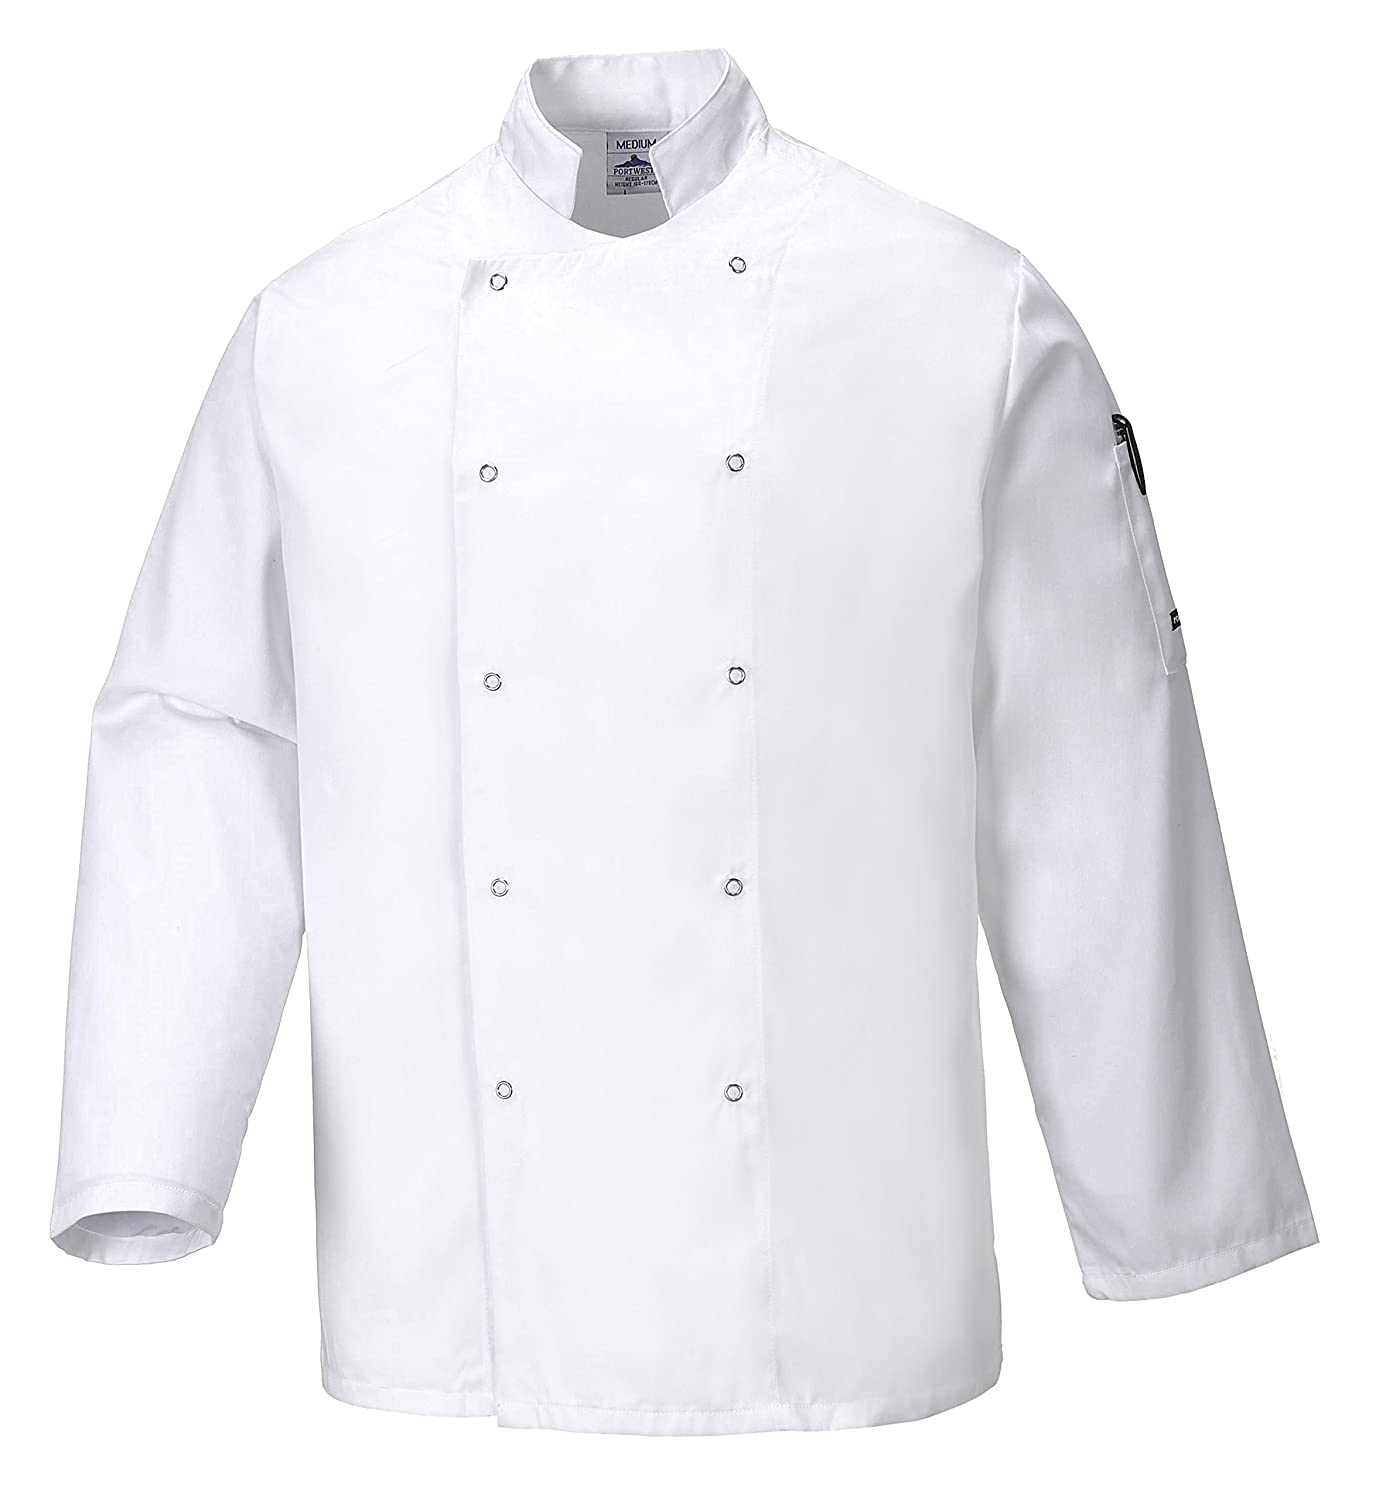 Portwest C833WHRXXXL Giacca da Chef Suffolk, Bianco, 3XL